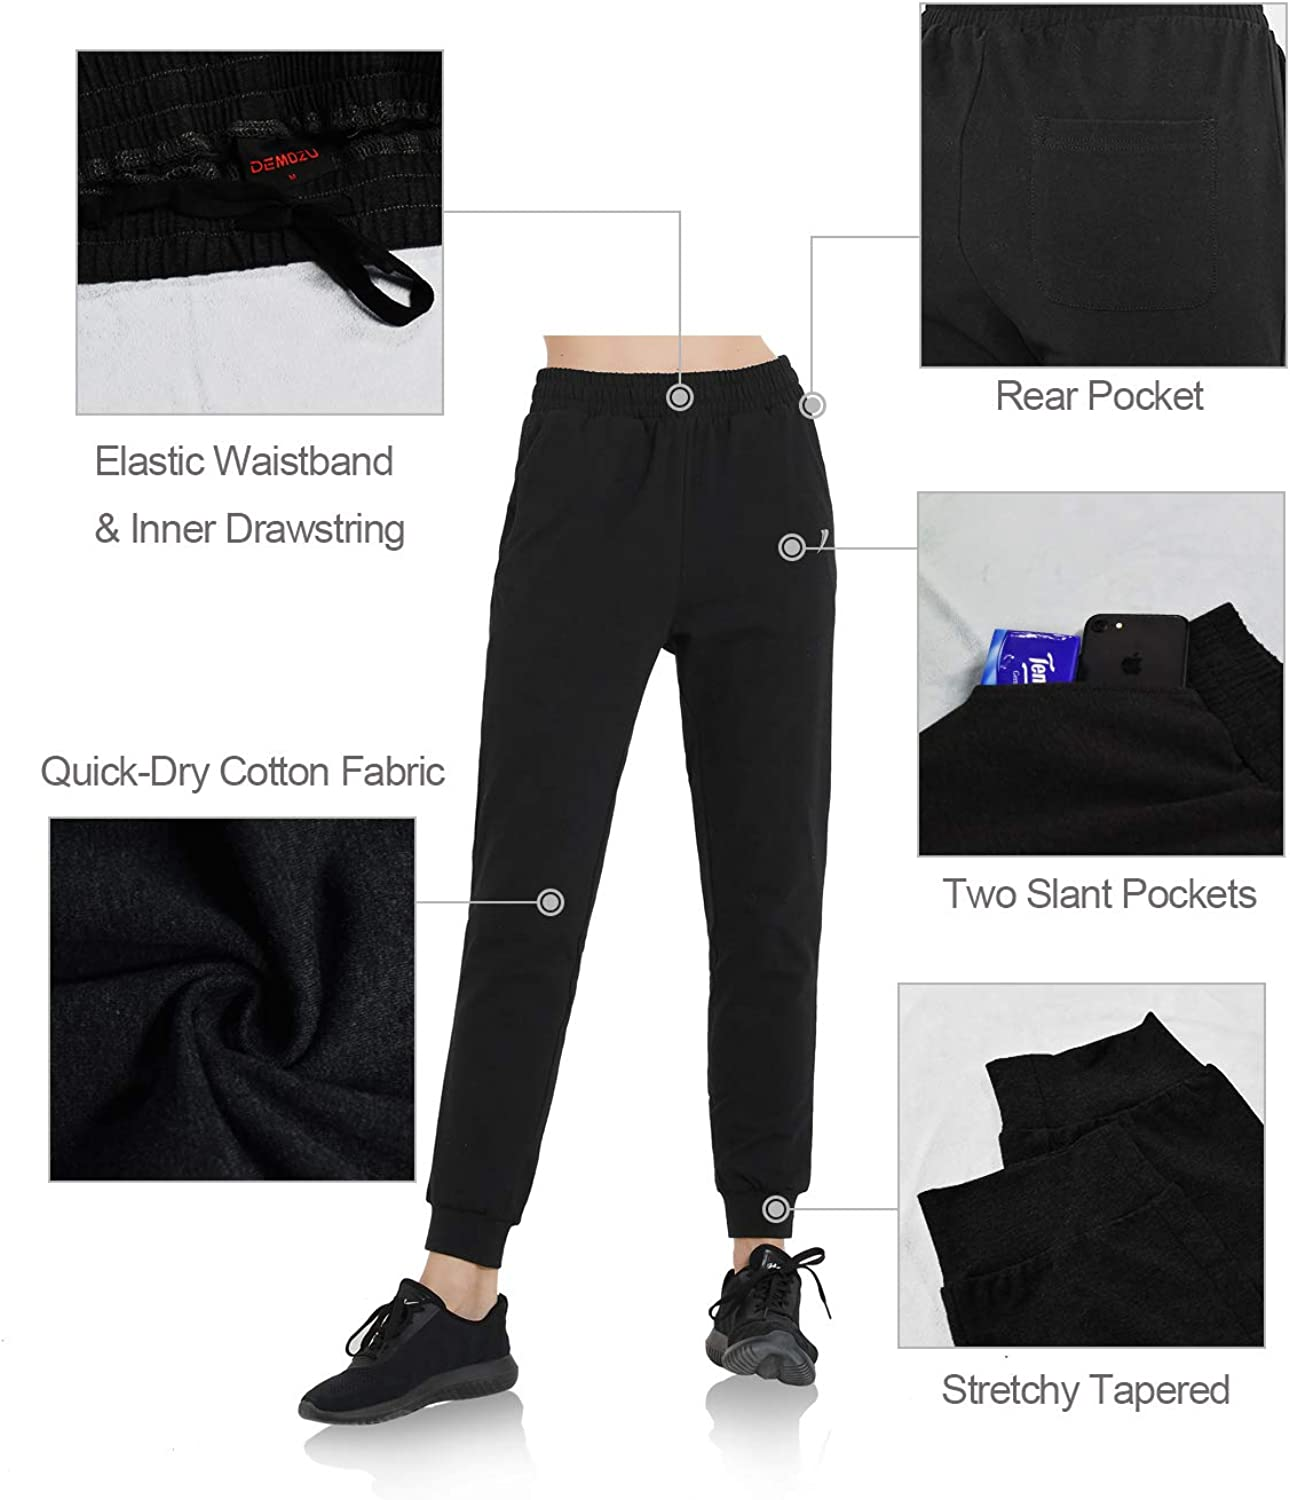 DEMOZU Womens Active Yoga Running Joggers Sweatpants Workout Training Track Lounge Cotton Quick Dry Pants with Pockets